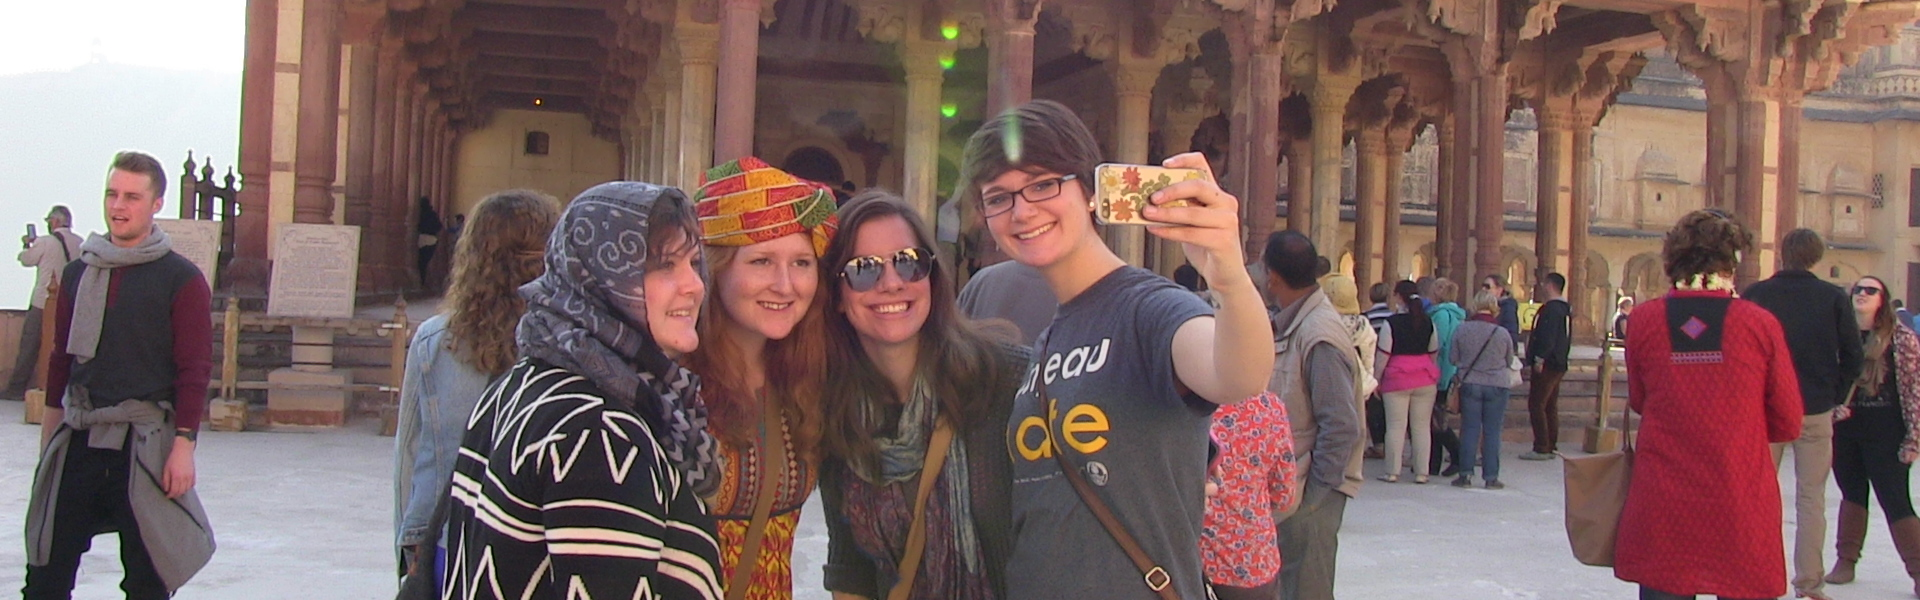 India immersion women's studies